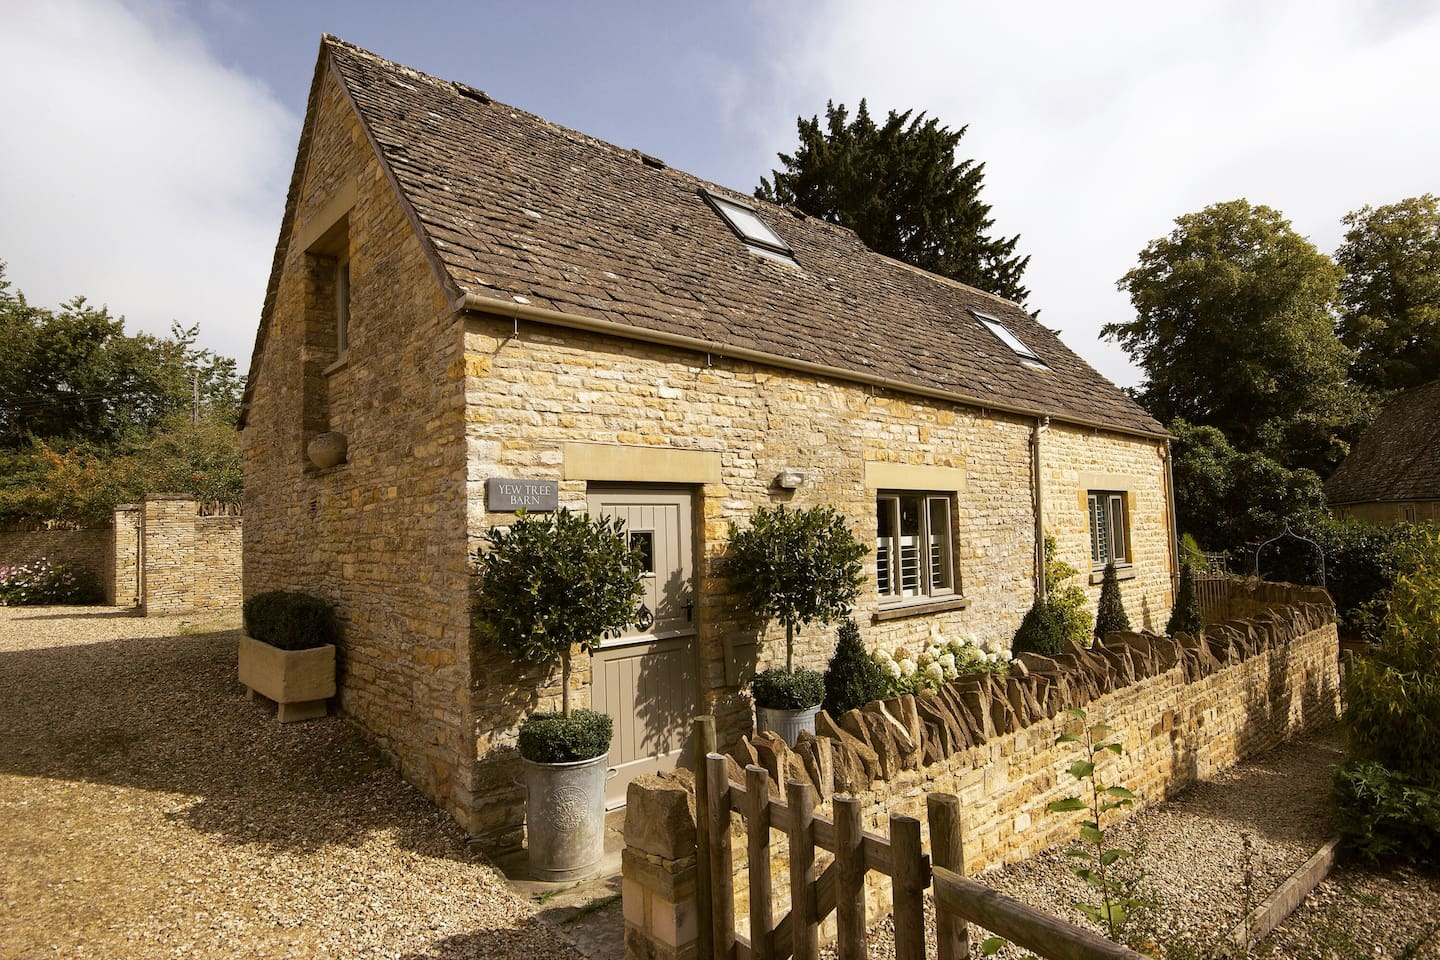 Yew Tree Barn is a Grade II Listed Cotswold Stone Cottage